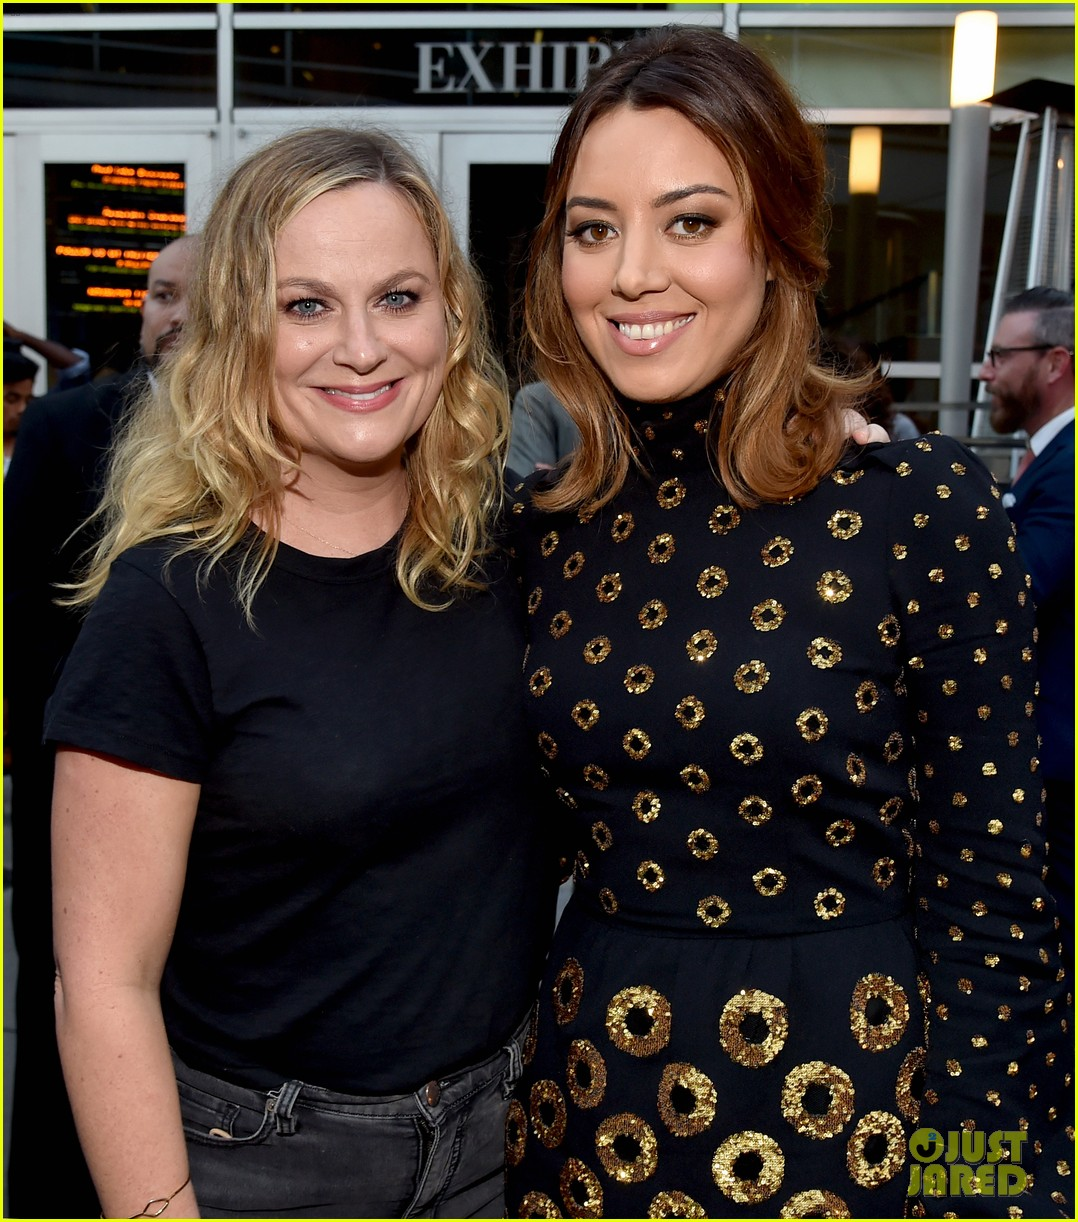 amy poehler dating aubrey plaza Getty imageswill arnett and amy poehler shockingly split last fall and, since then, have largely kept the details of their personal life out of the spotlight but the funnyman recently opened up abo.